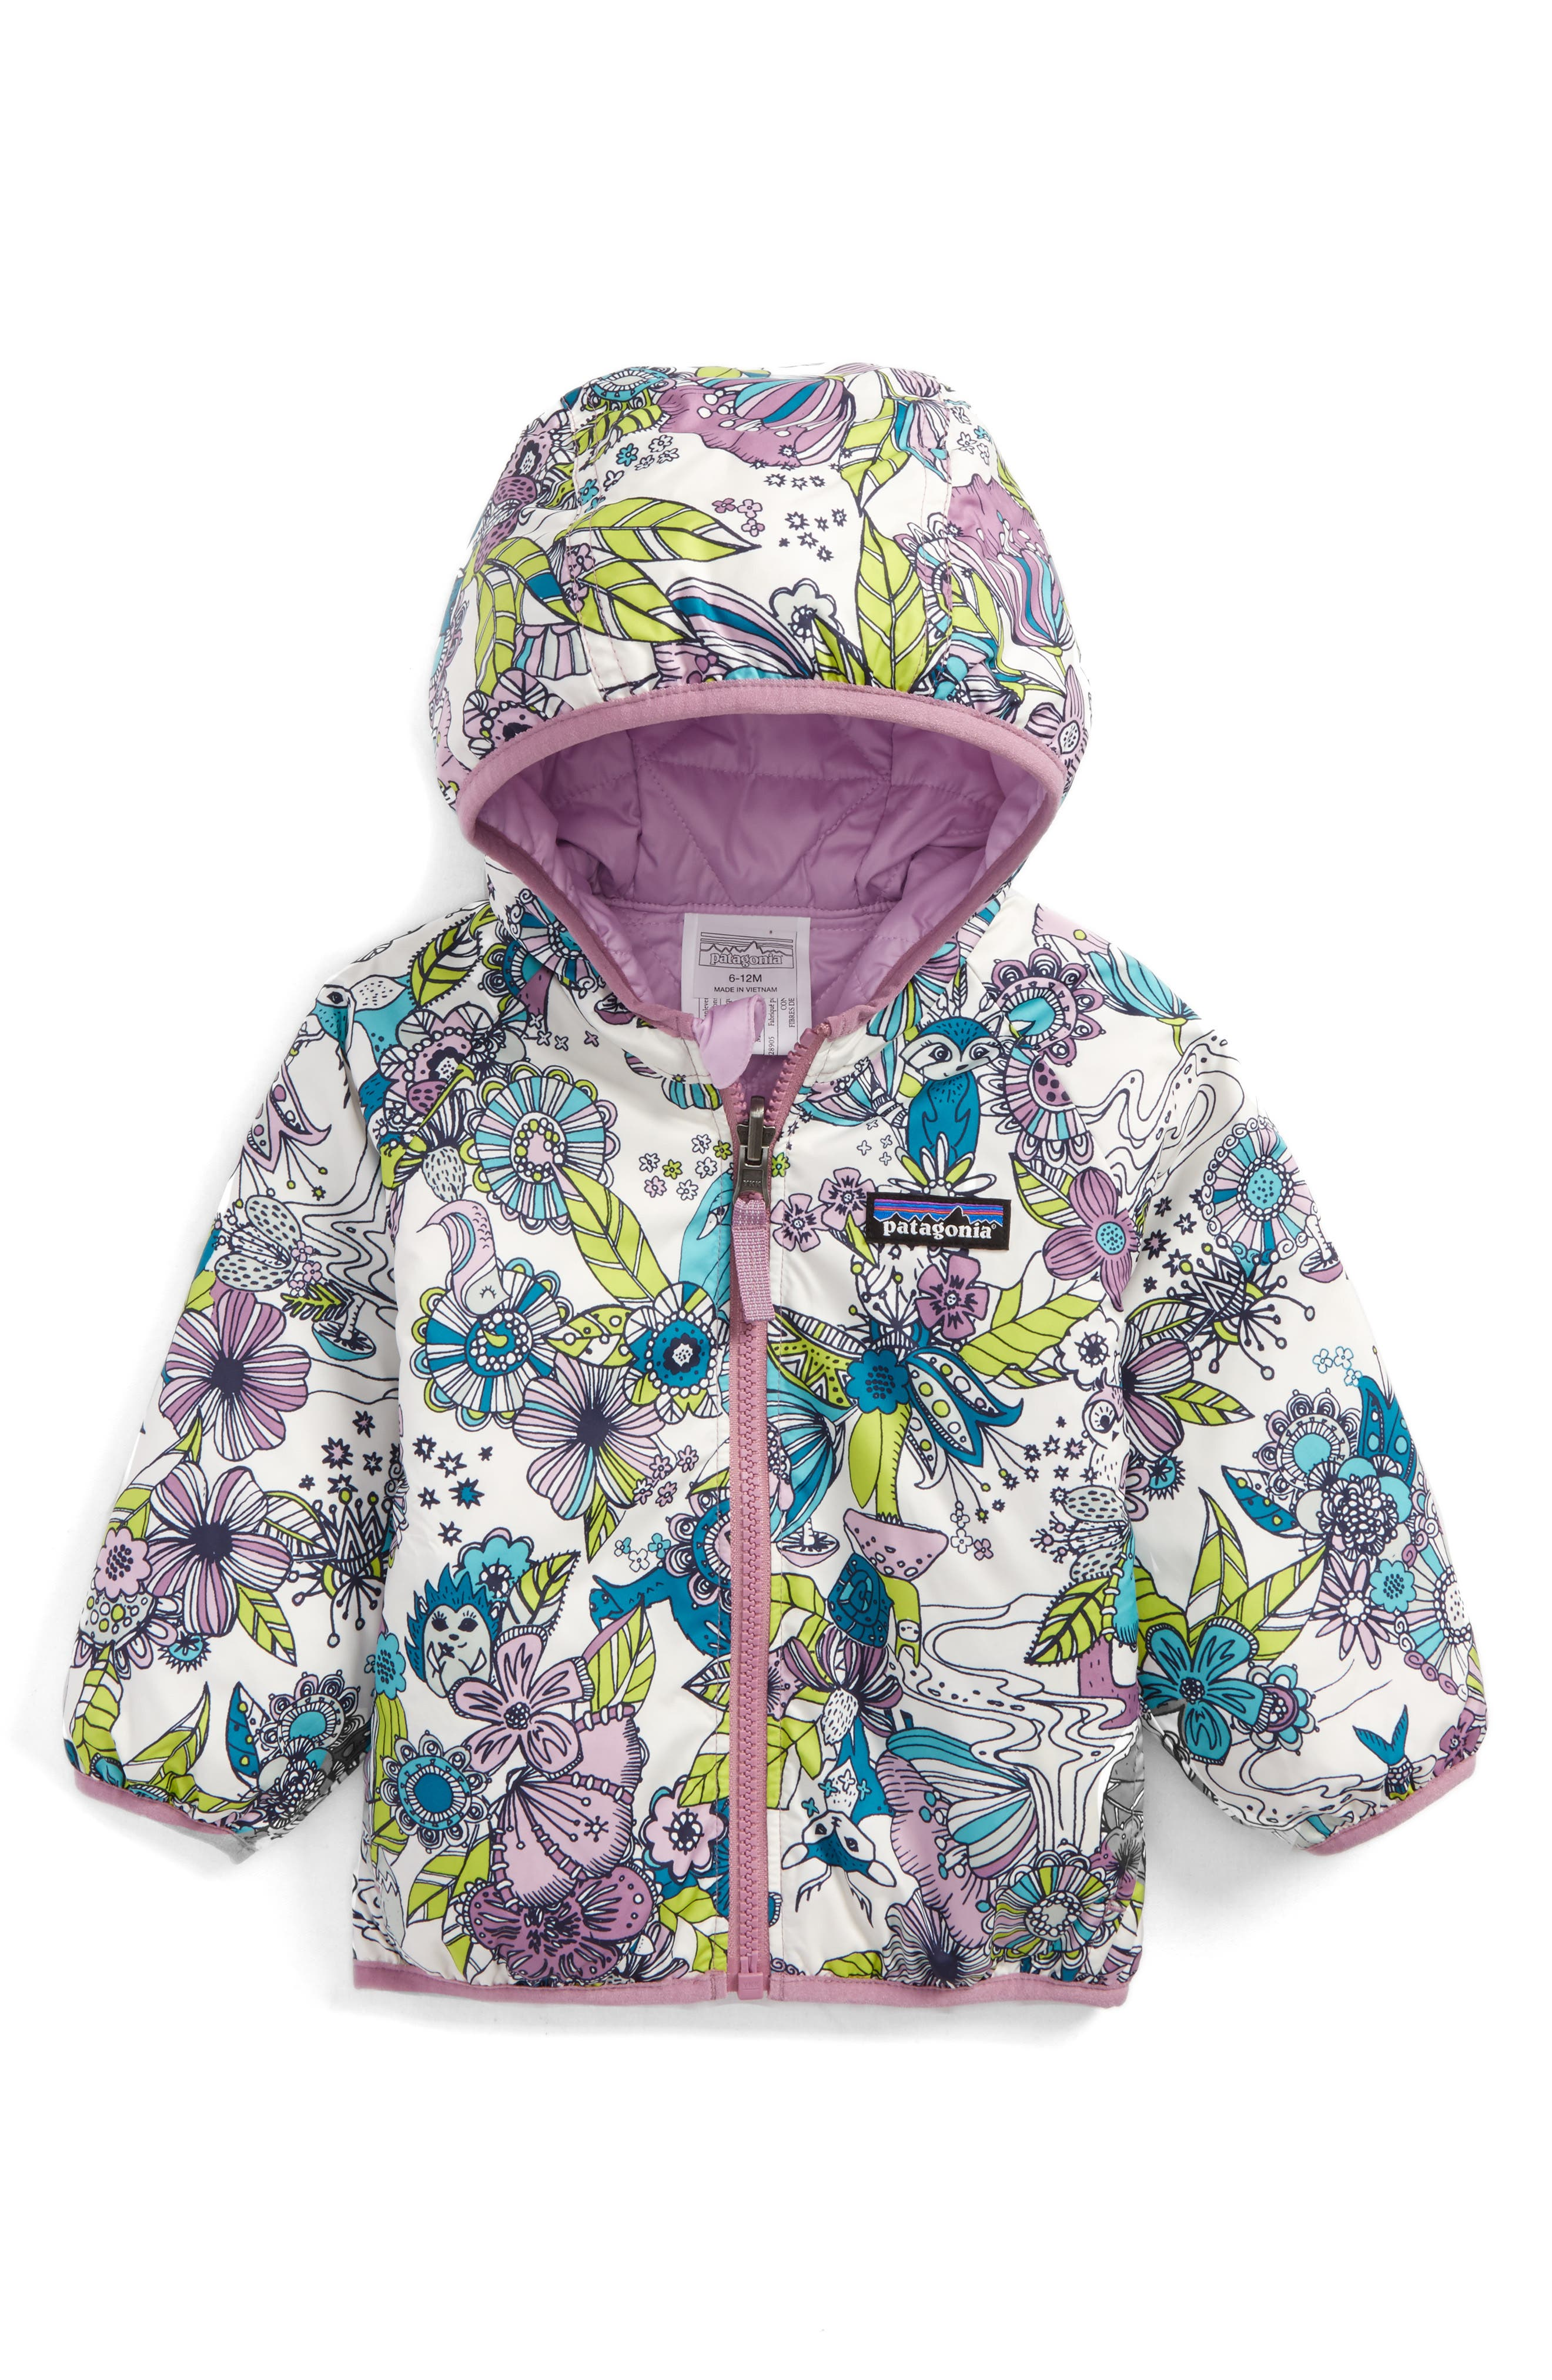 Puff-Ball Water Resistant Reversible Jacket,                         Main,                         color, Cuddle Puddle/ Birch White